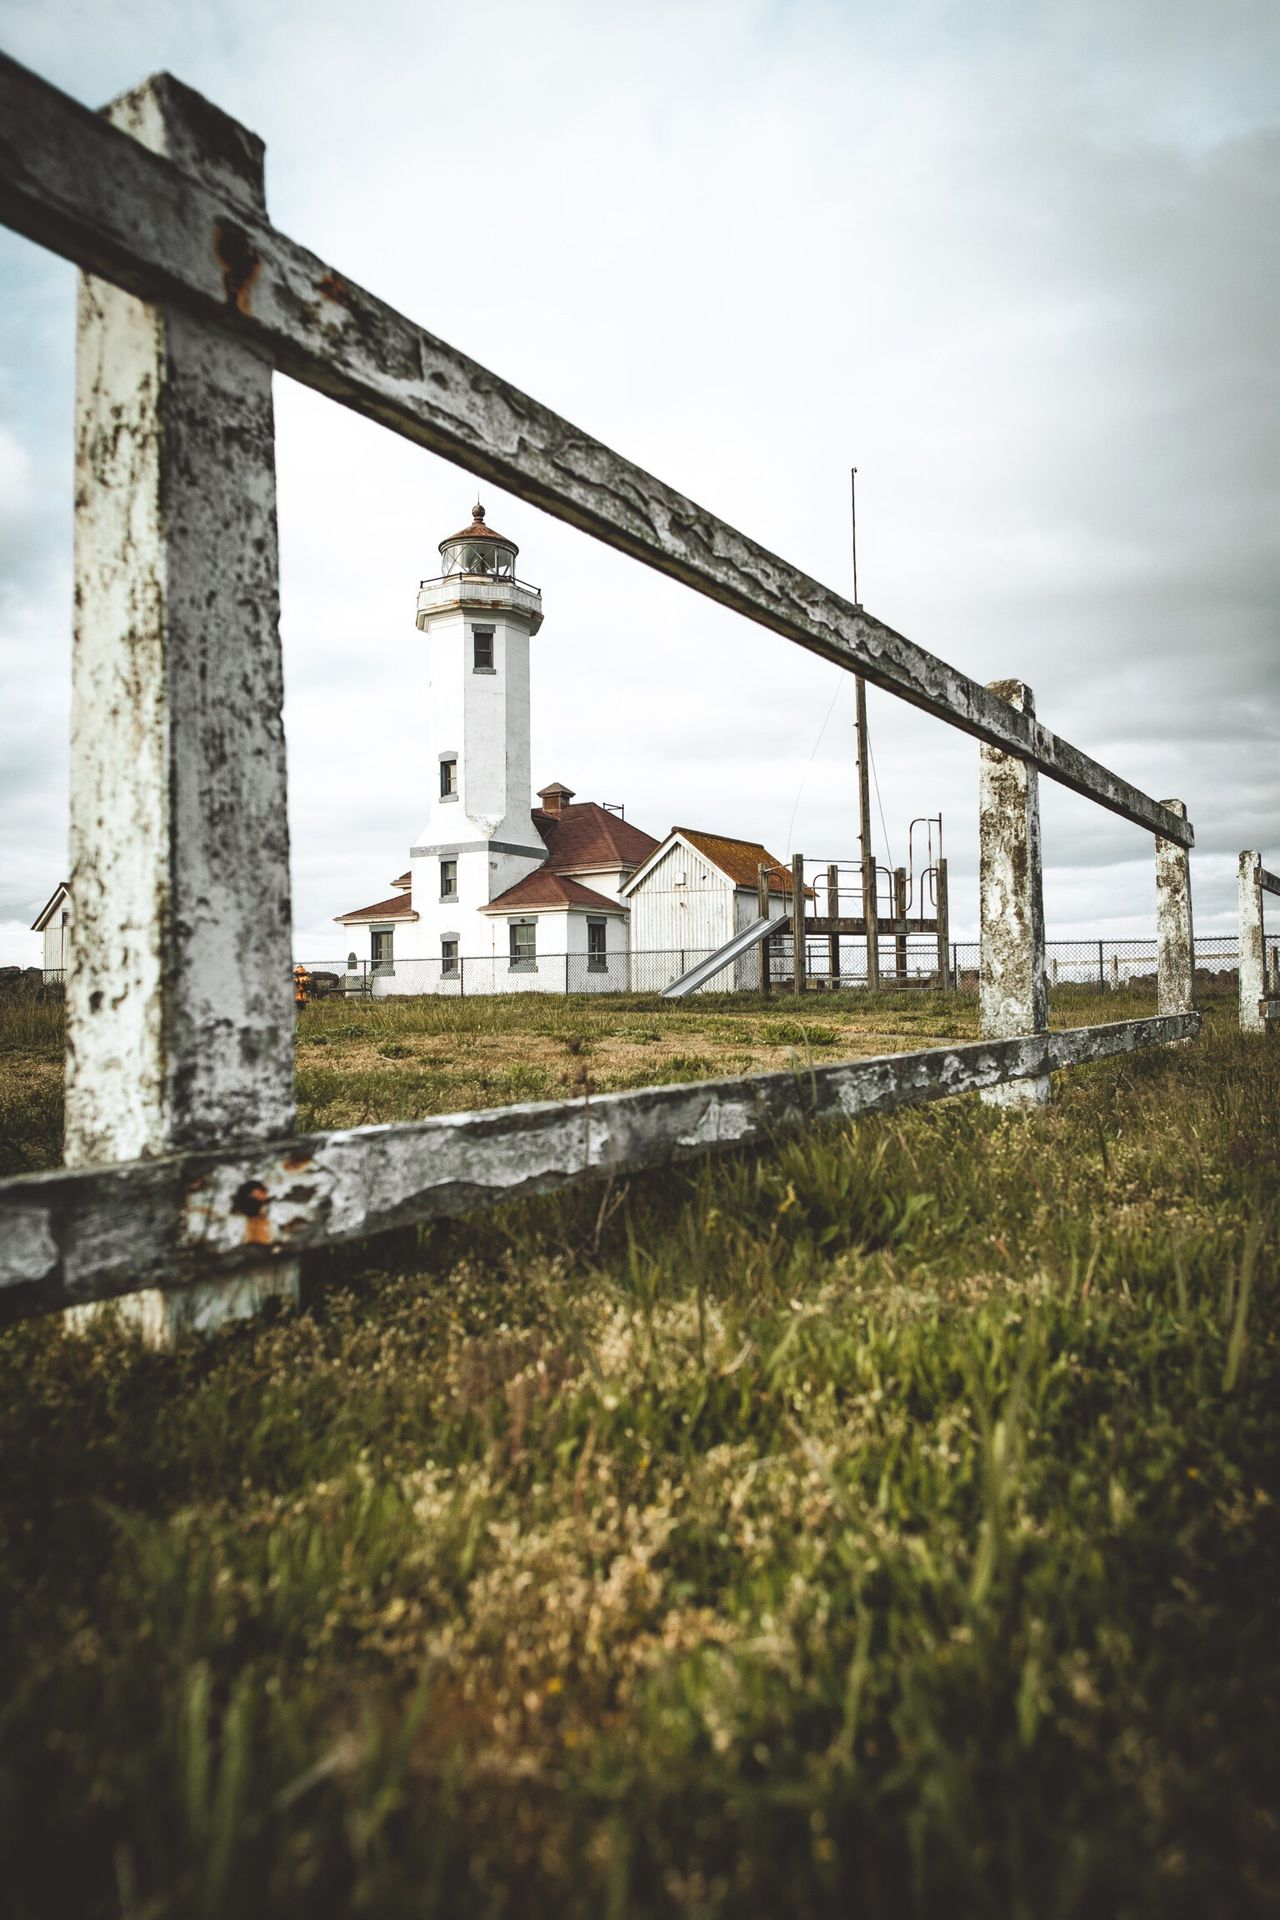 Live For The Story Built Structure Architecture Day No People Grass Outdoors Building Exterior Sky Nature Beach House Home Ocean Pacific Northwest  PNW Travel Love Sand Fence Porttownsend Washington Sky And Clouds Lost